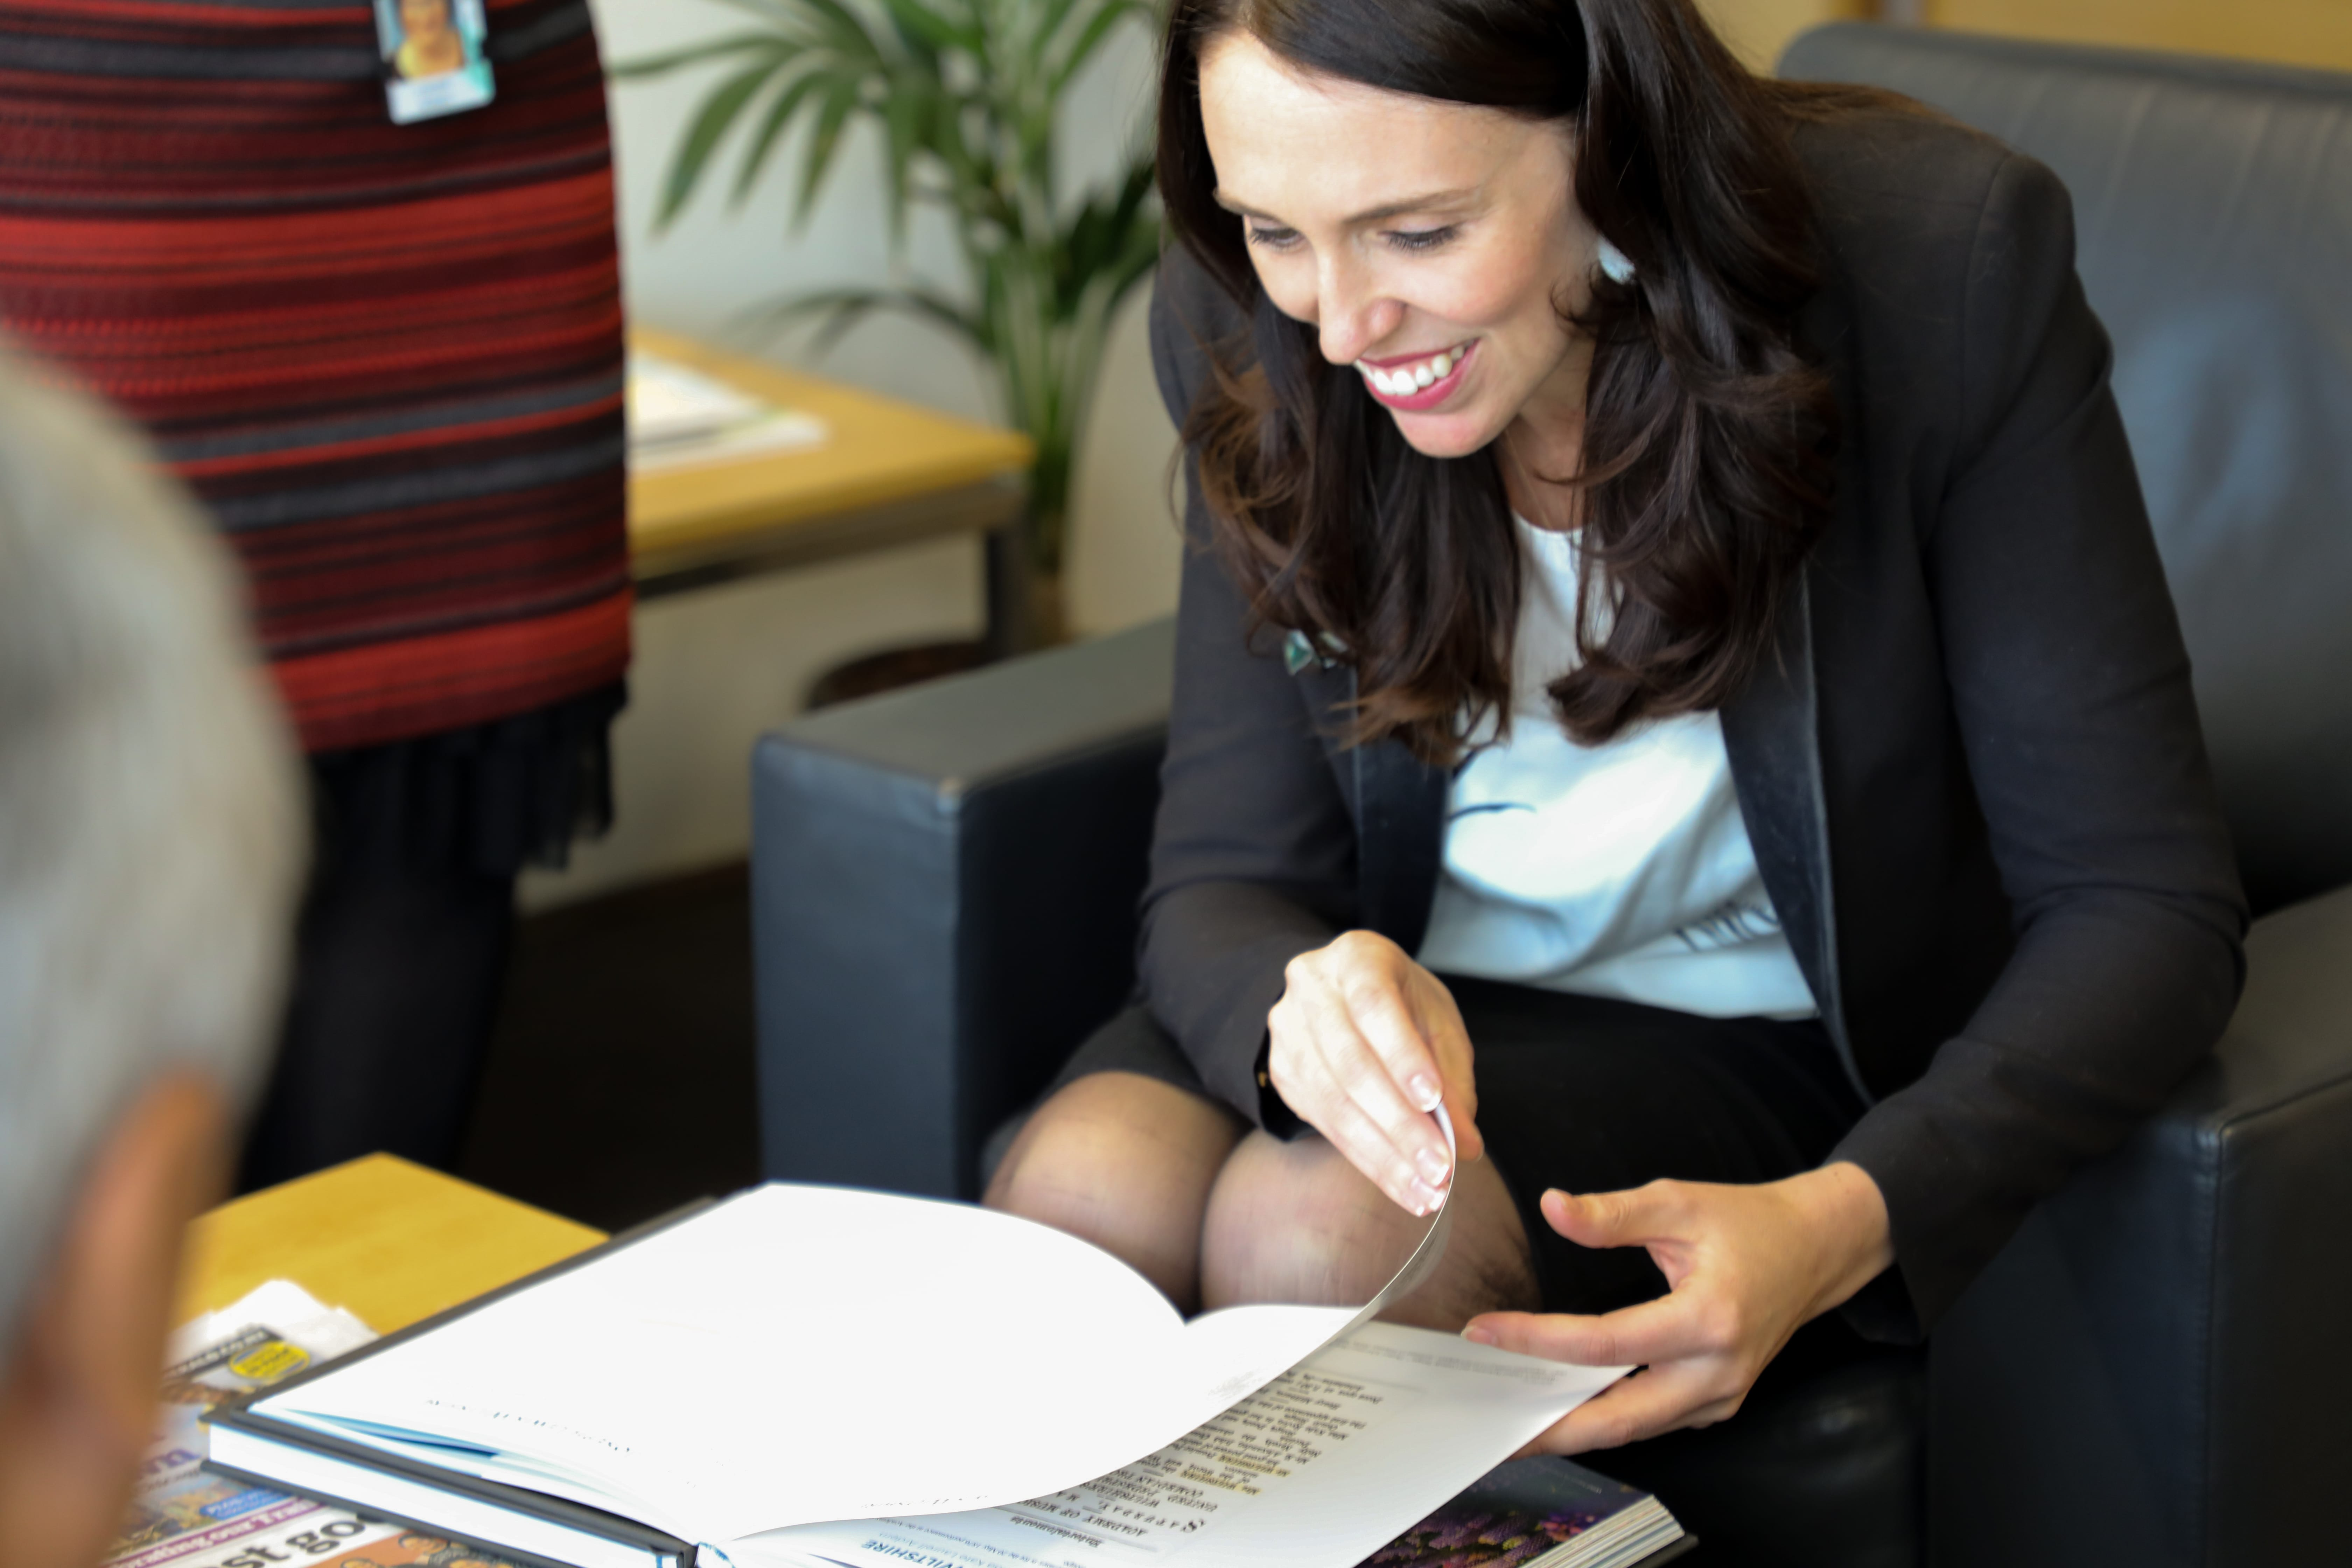 (Photo courtesy of The Church of Jesus Christ of Latter-day Saints) Jacinda Ardern, prime minister of New Zealand, reads from a volume of her family history Sept. 18, 2018